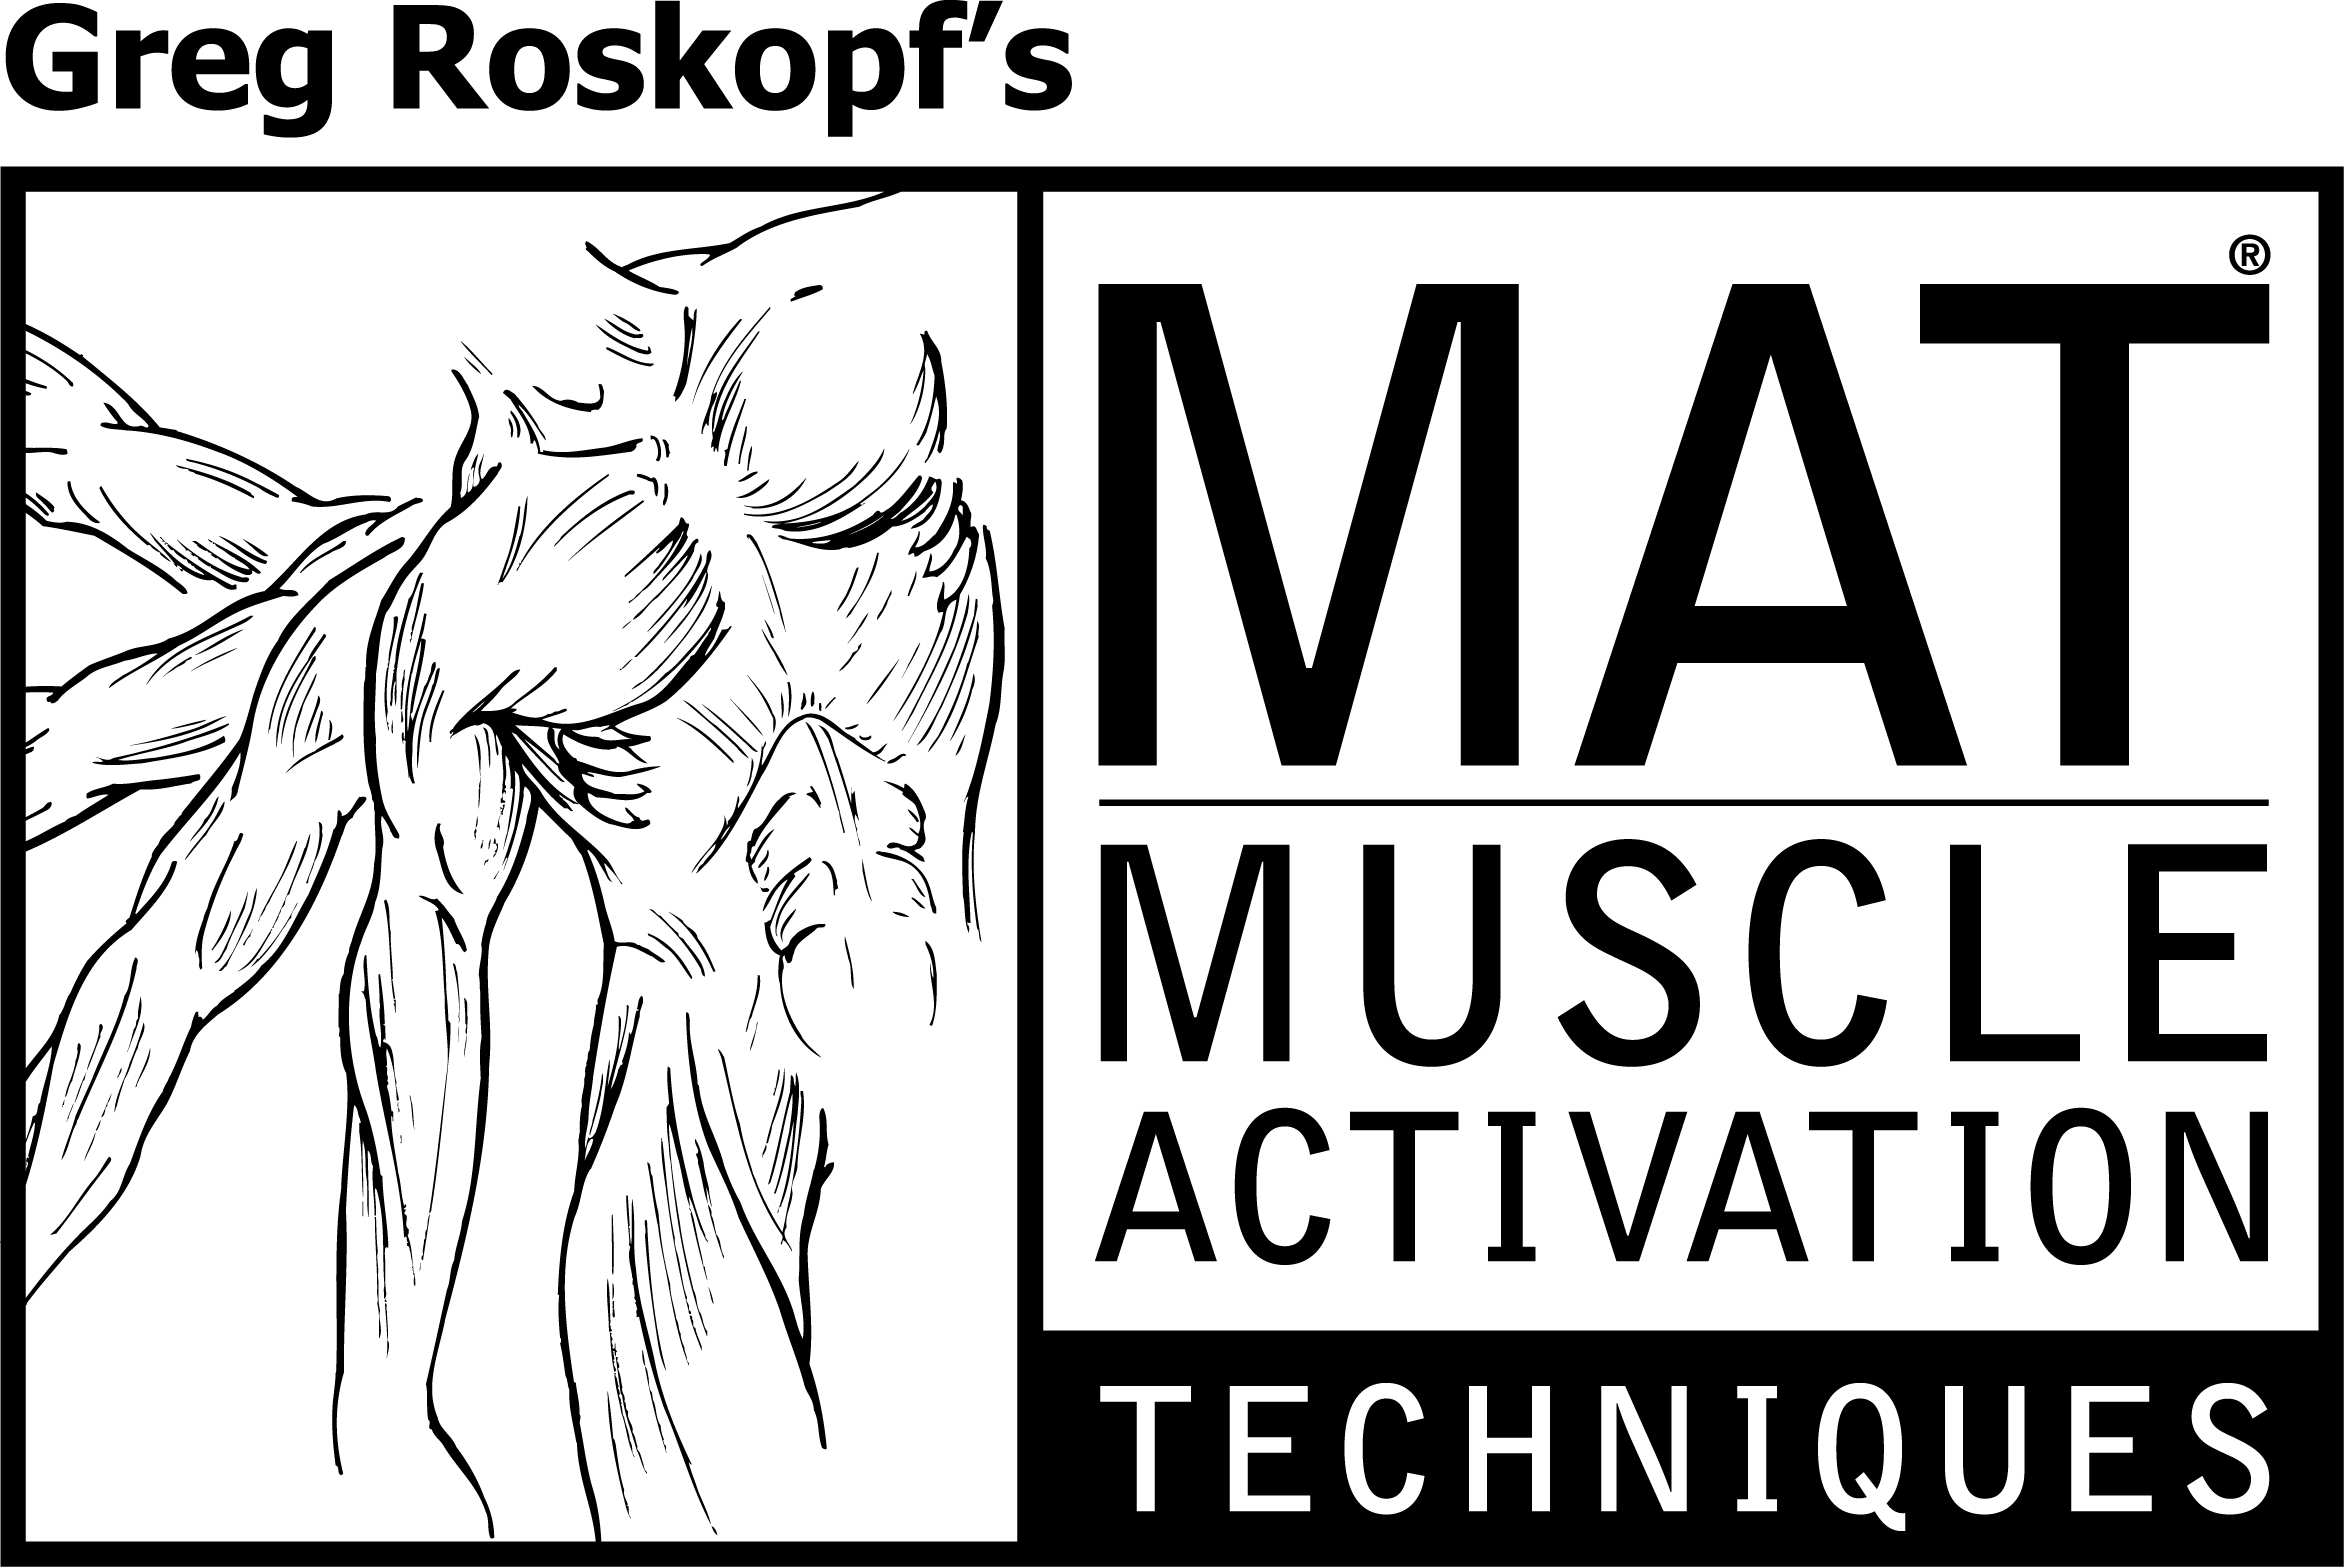 Physical-Therapy-and-Muscle-Activation-Techniques